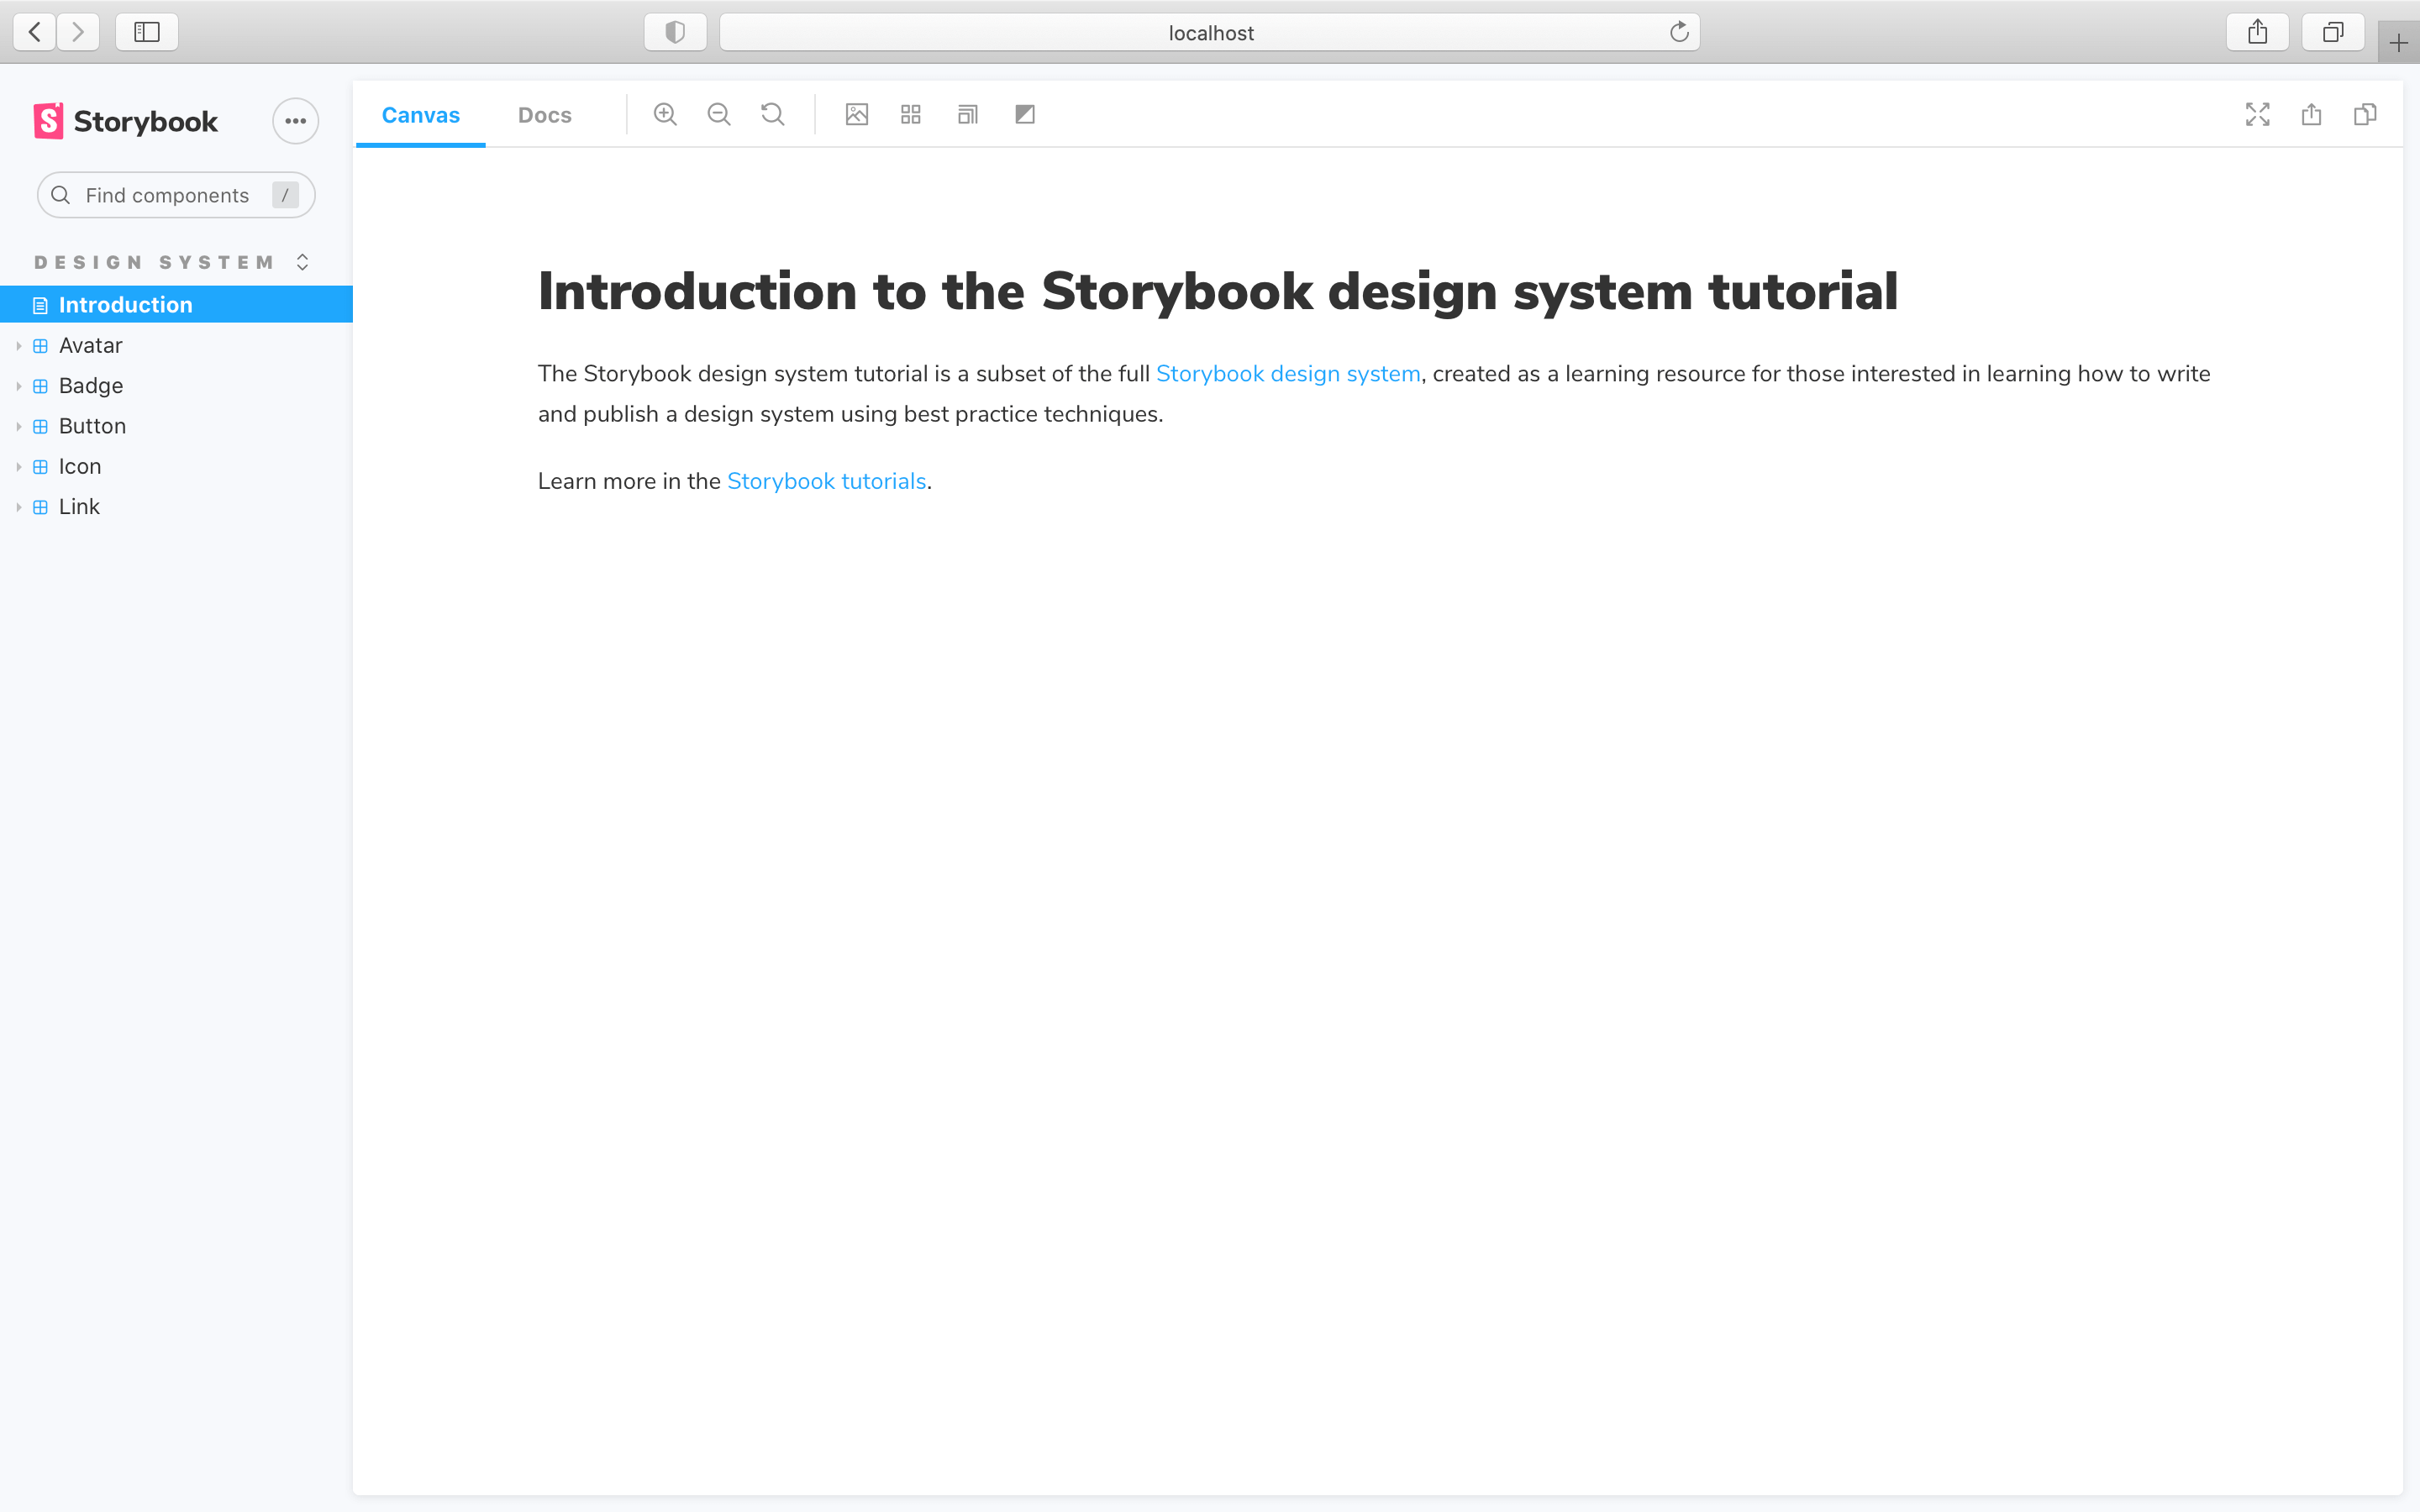 Storybook docs with introduction page